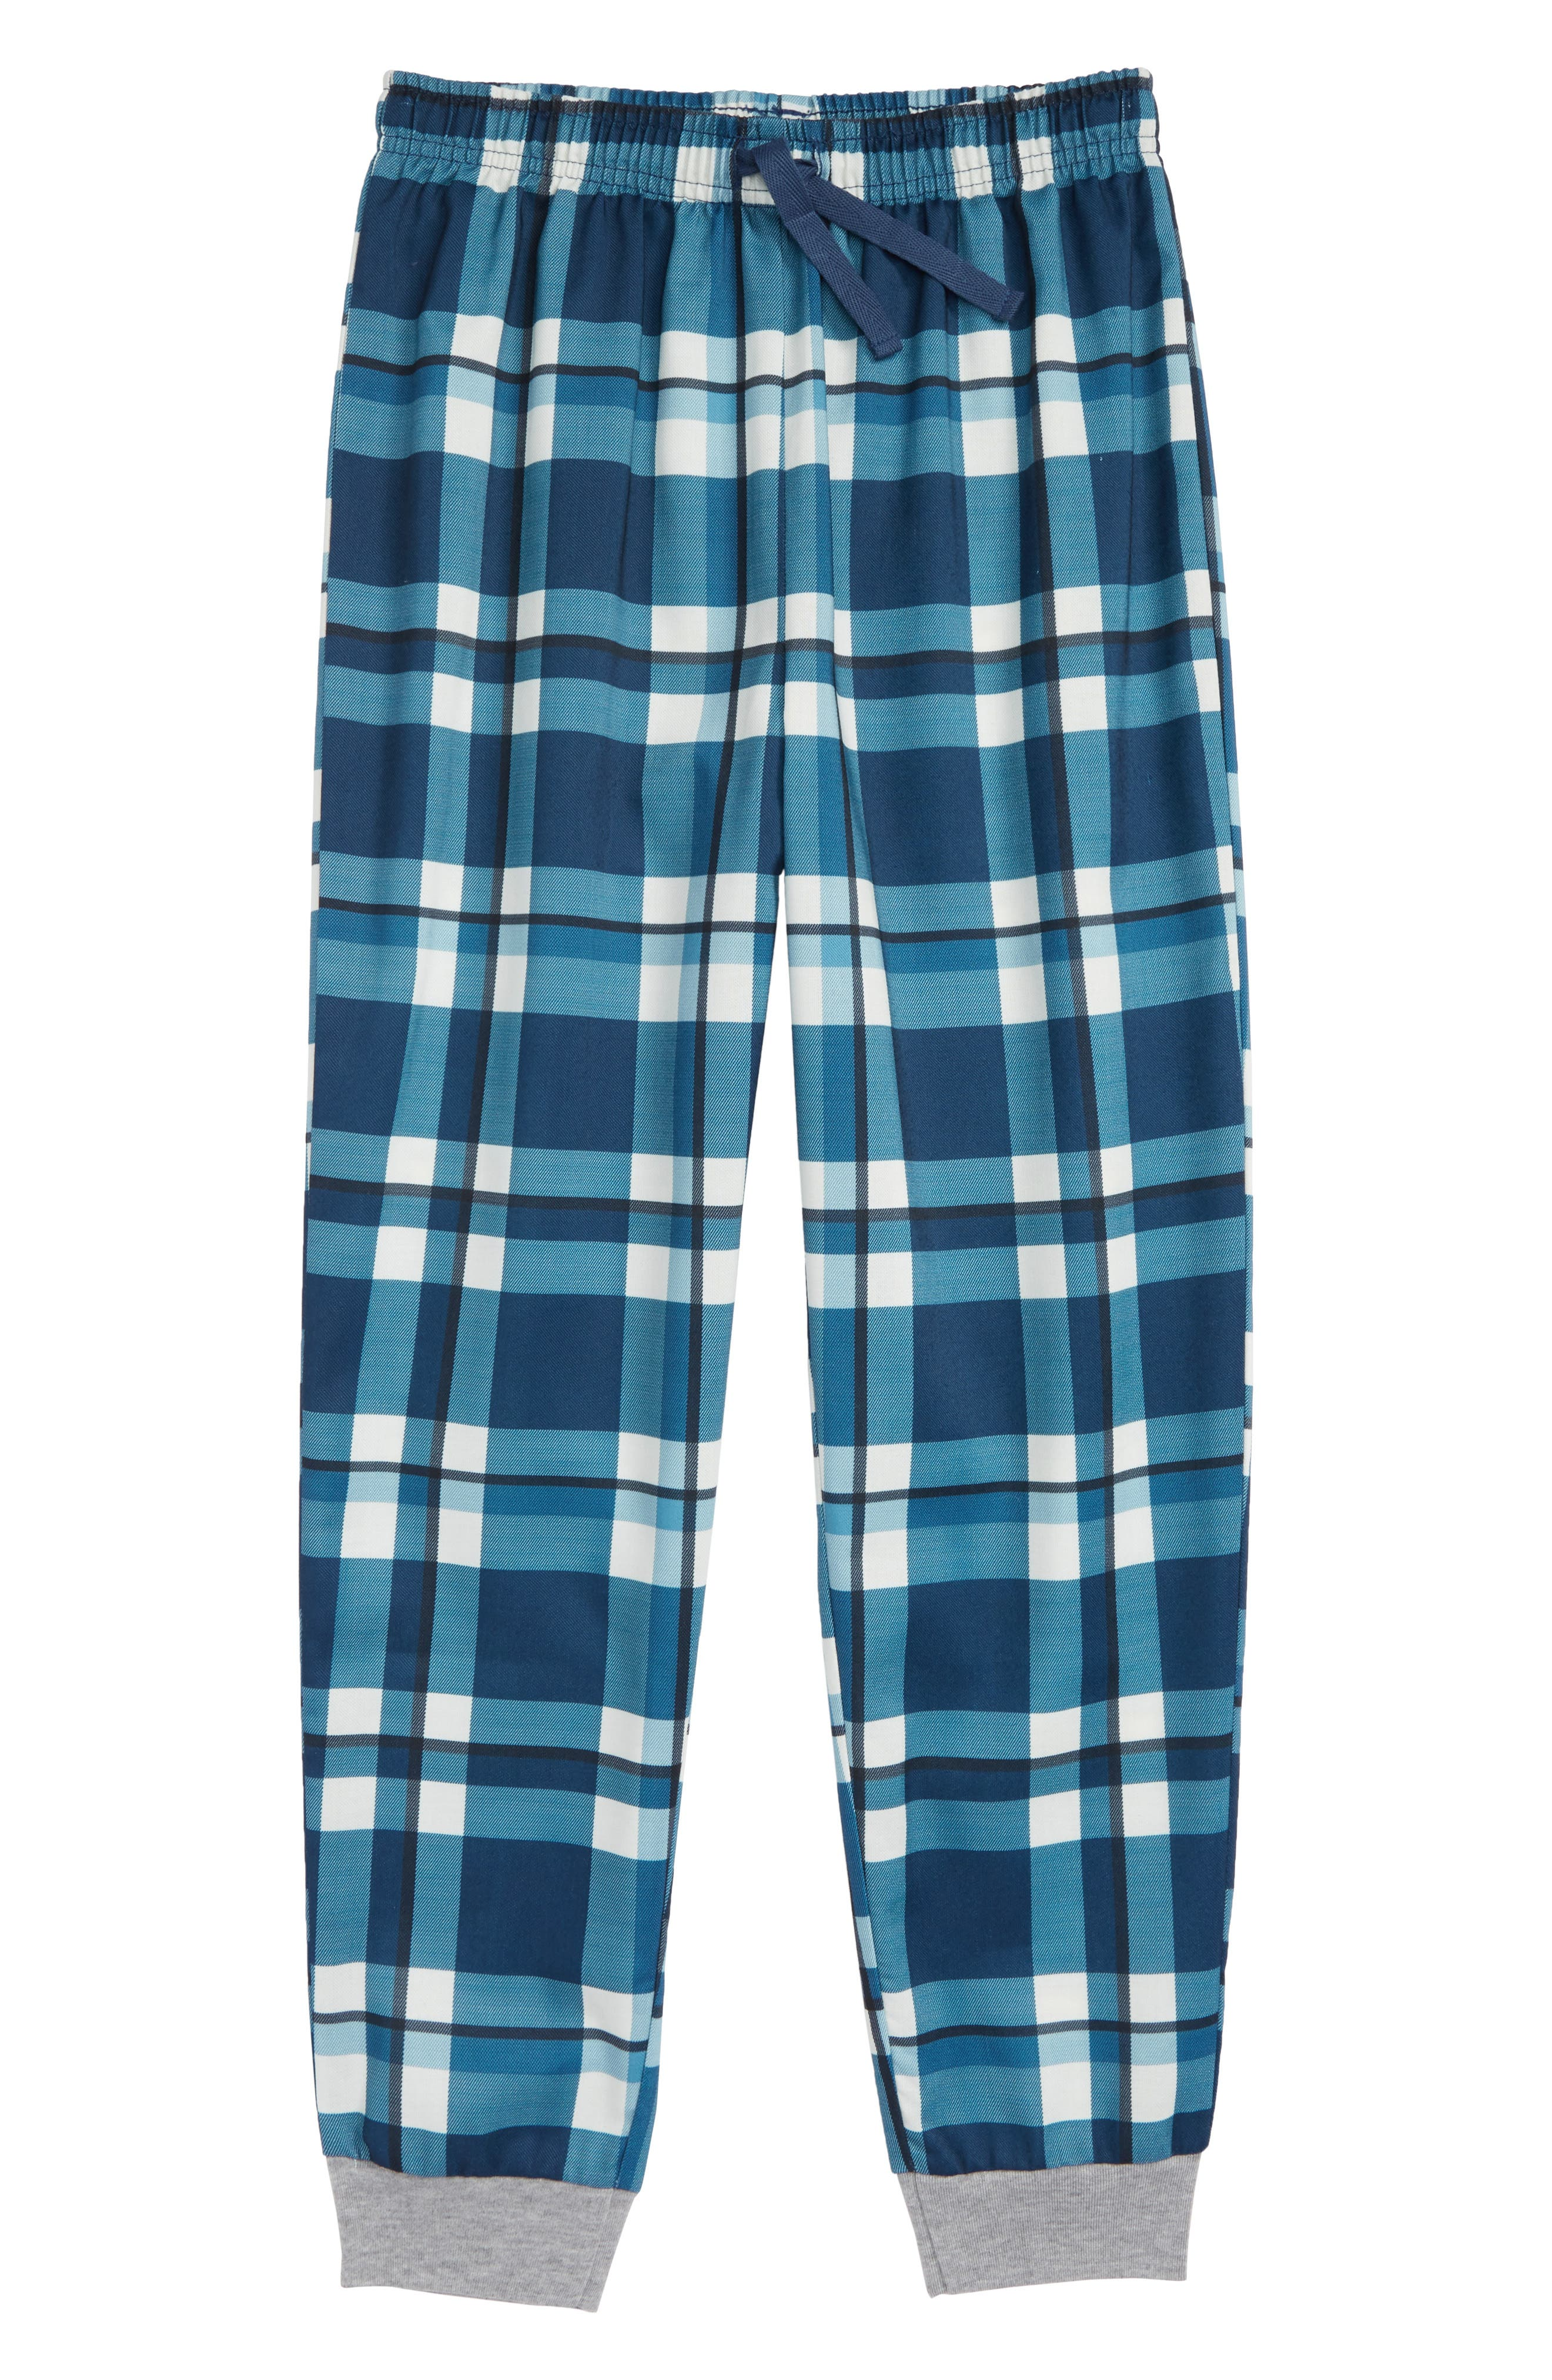 TUCKER + TATE Flannel Jogger Pants, Main, color, BLUE WING- IVORY PLAID